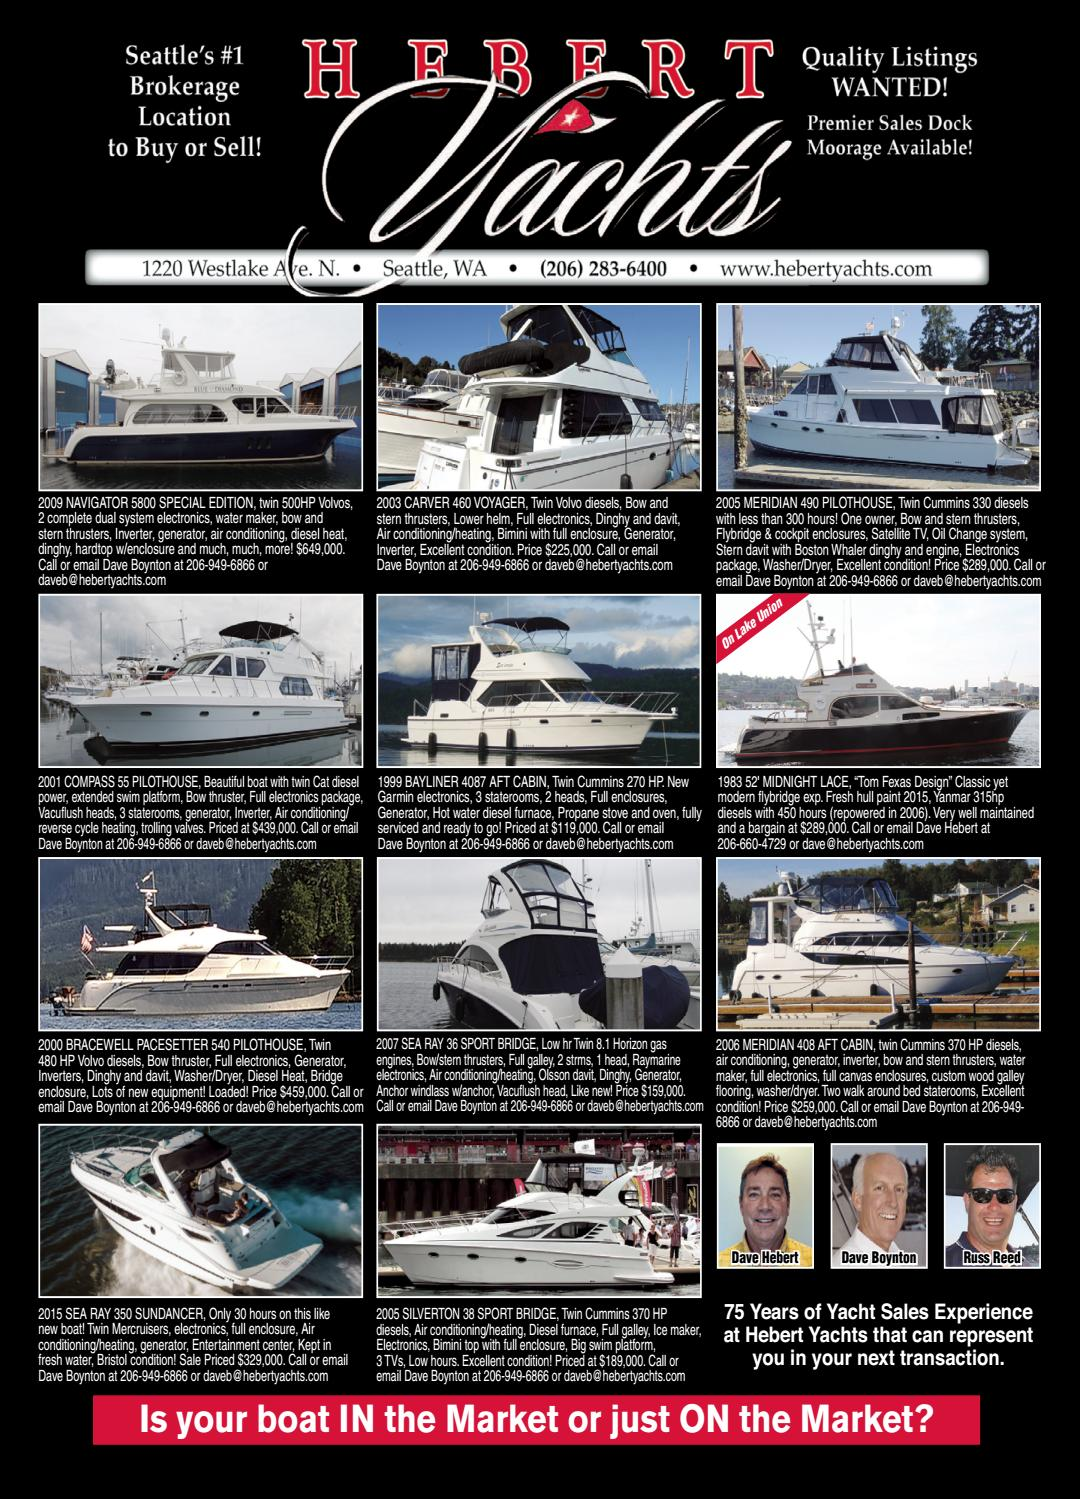 Northwest Yachting March 2017 by Northwest Yachting - issuu